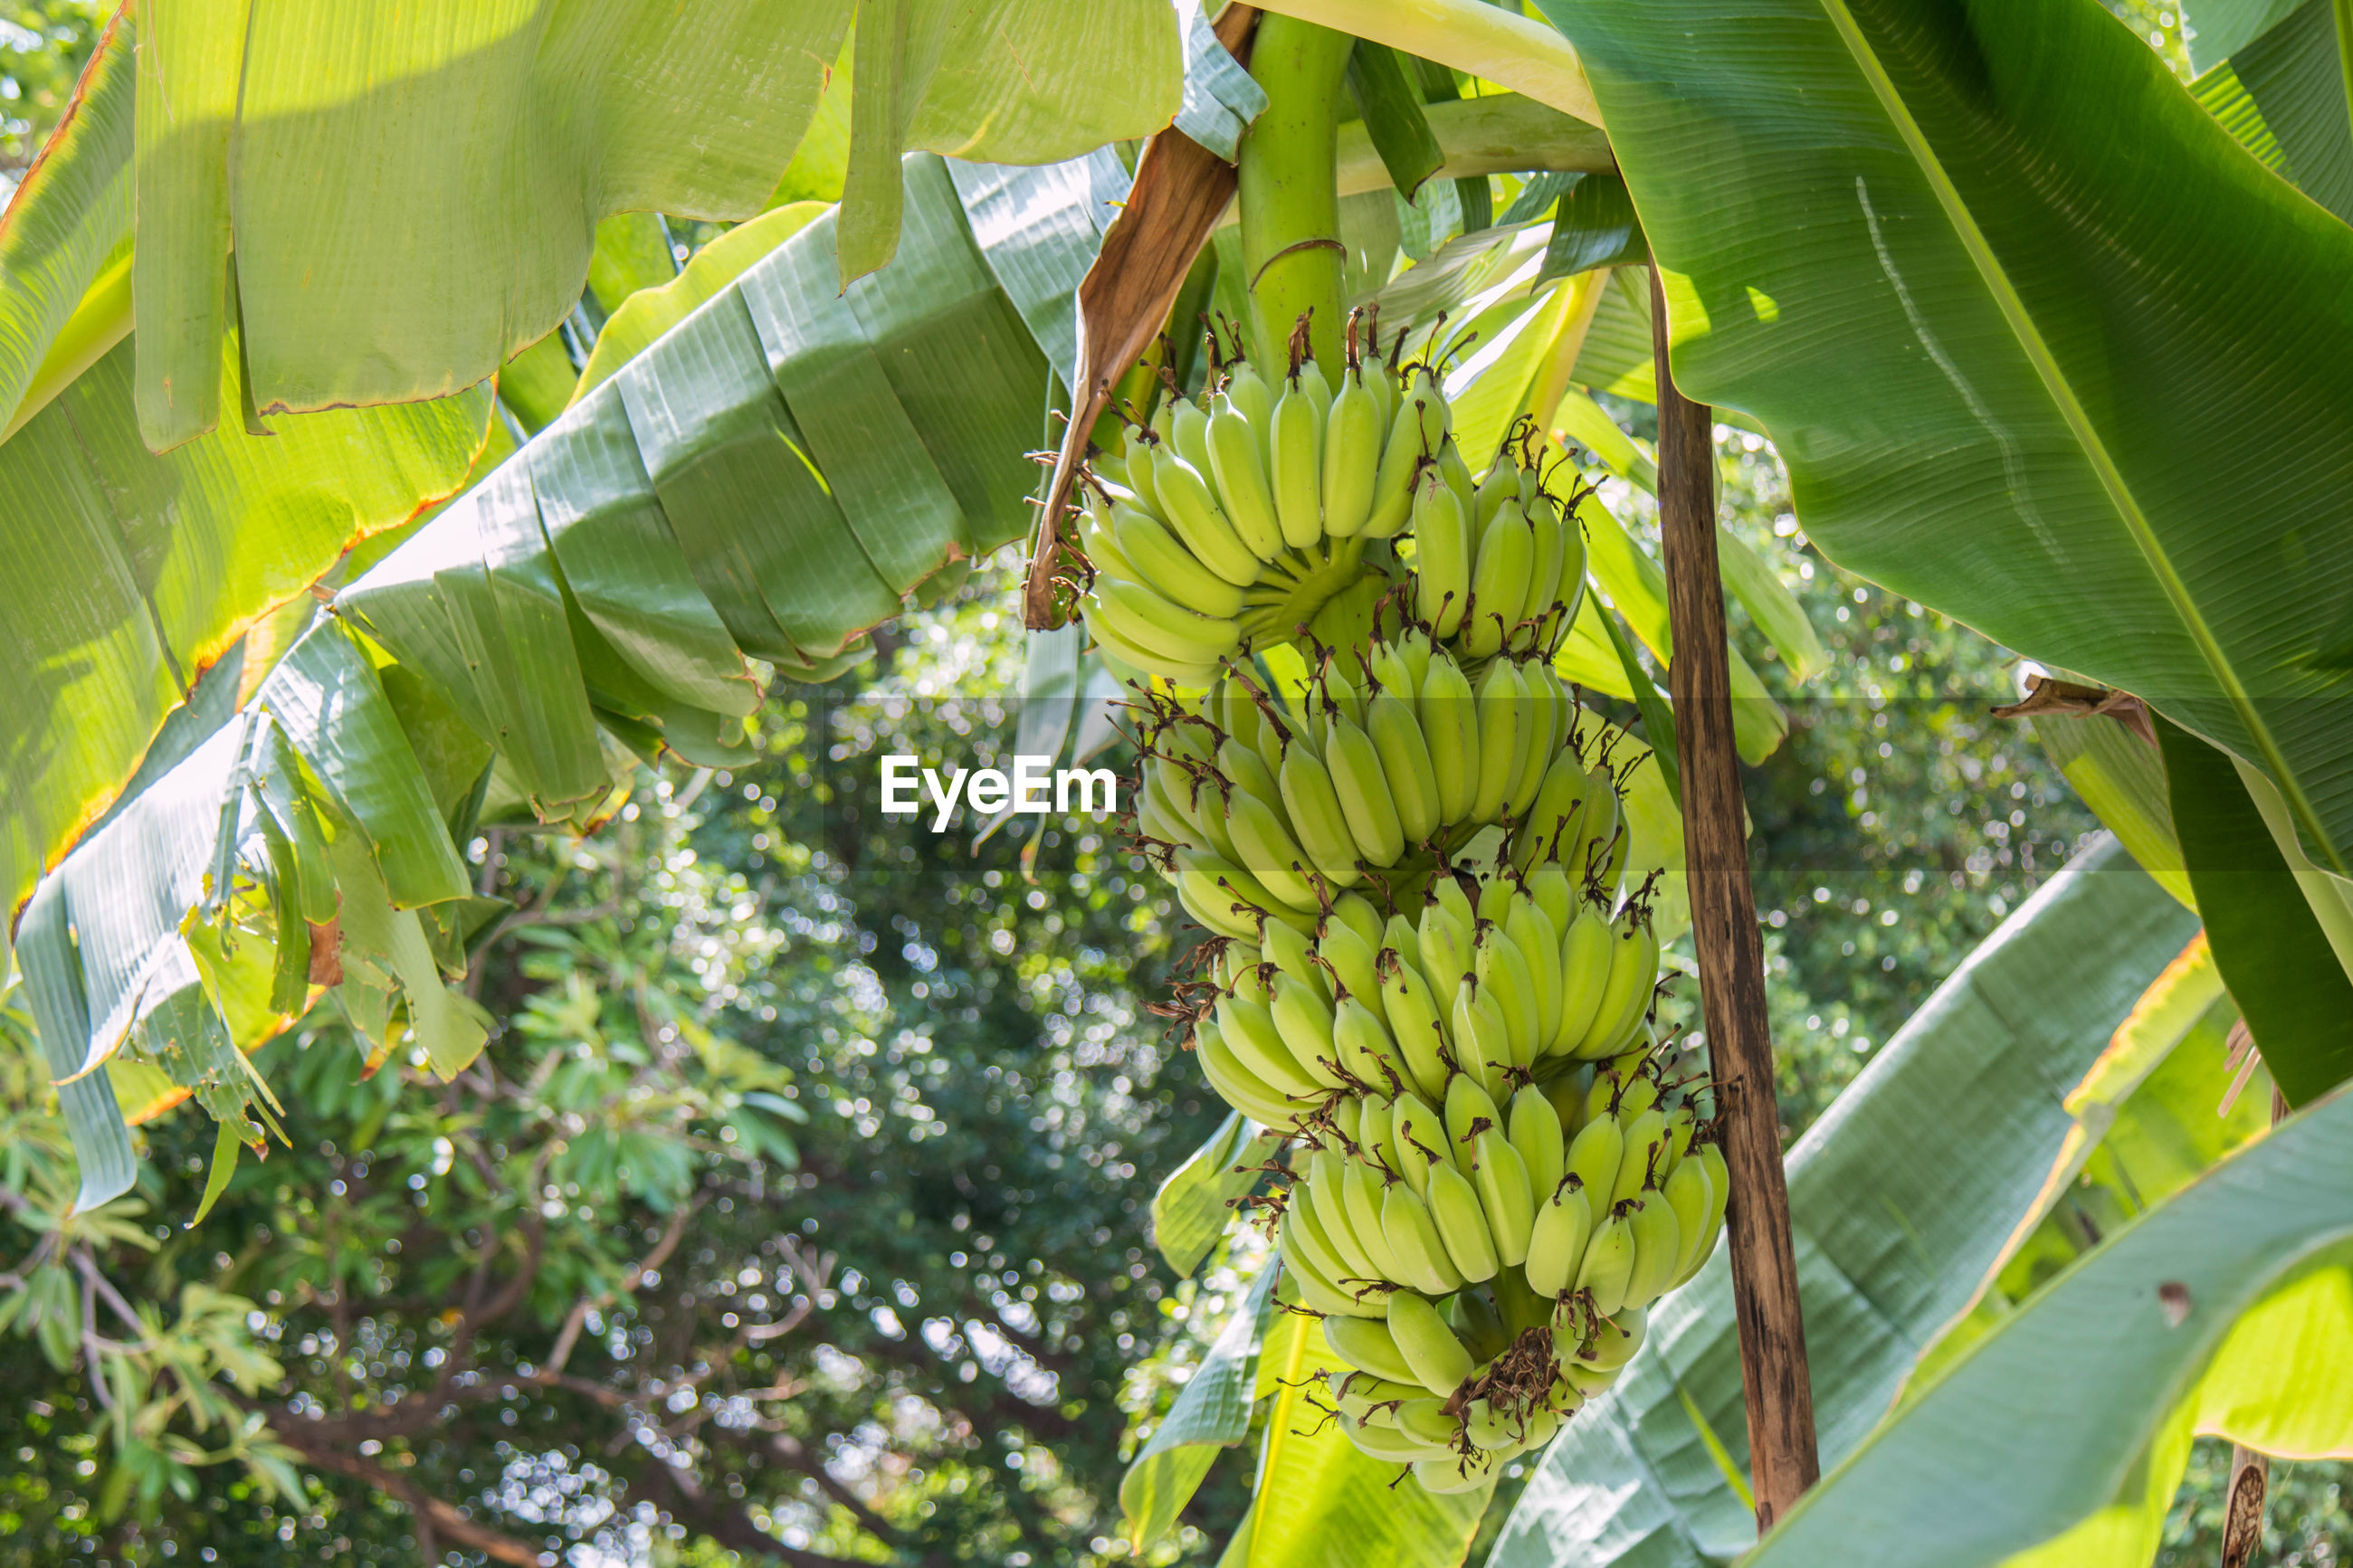 The banana tree has a bunch of bananas with fresh green leaves in the banana garden.